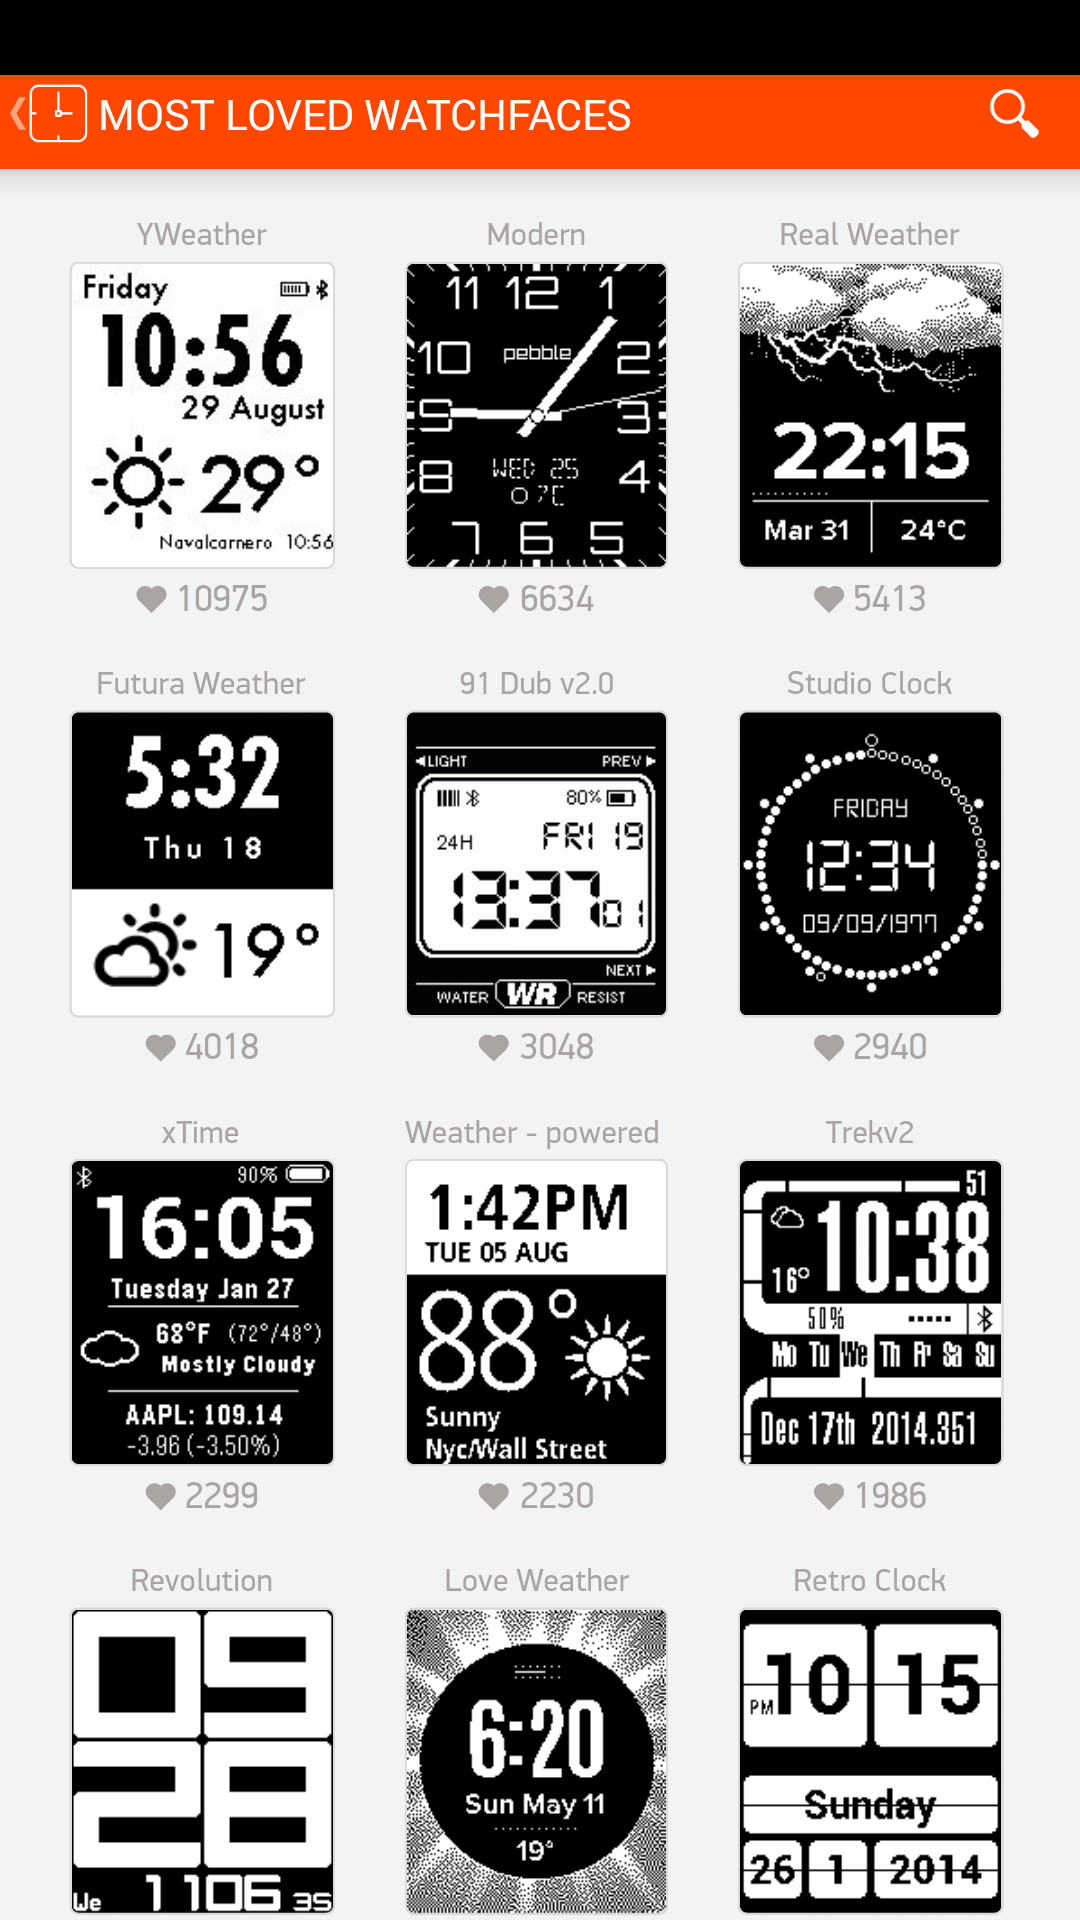 Pebble App - Watchfaces